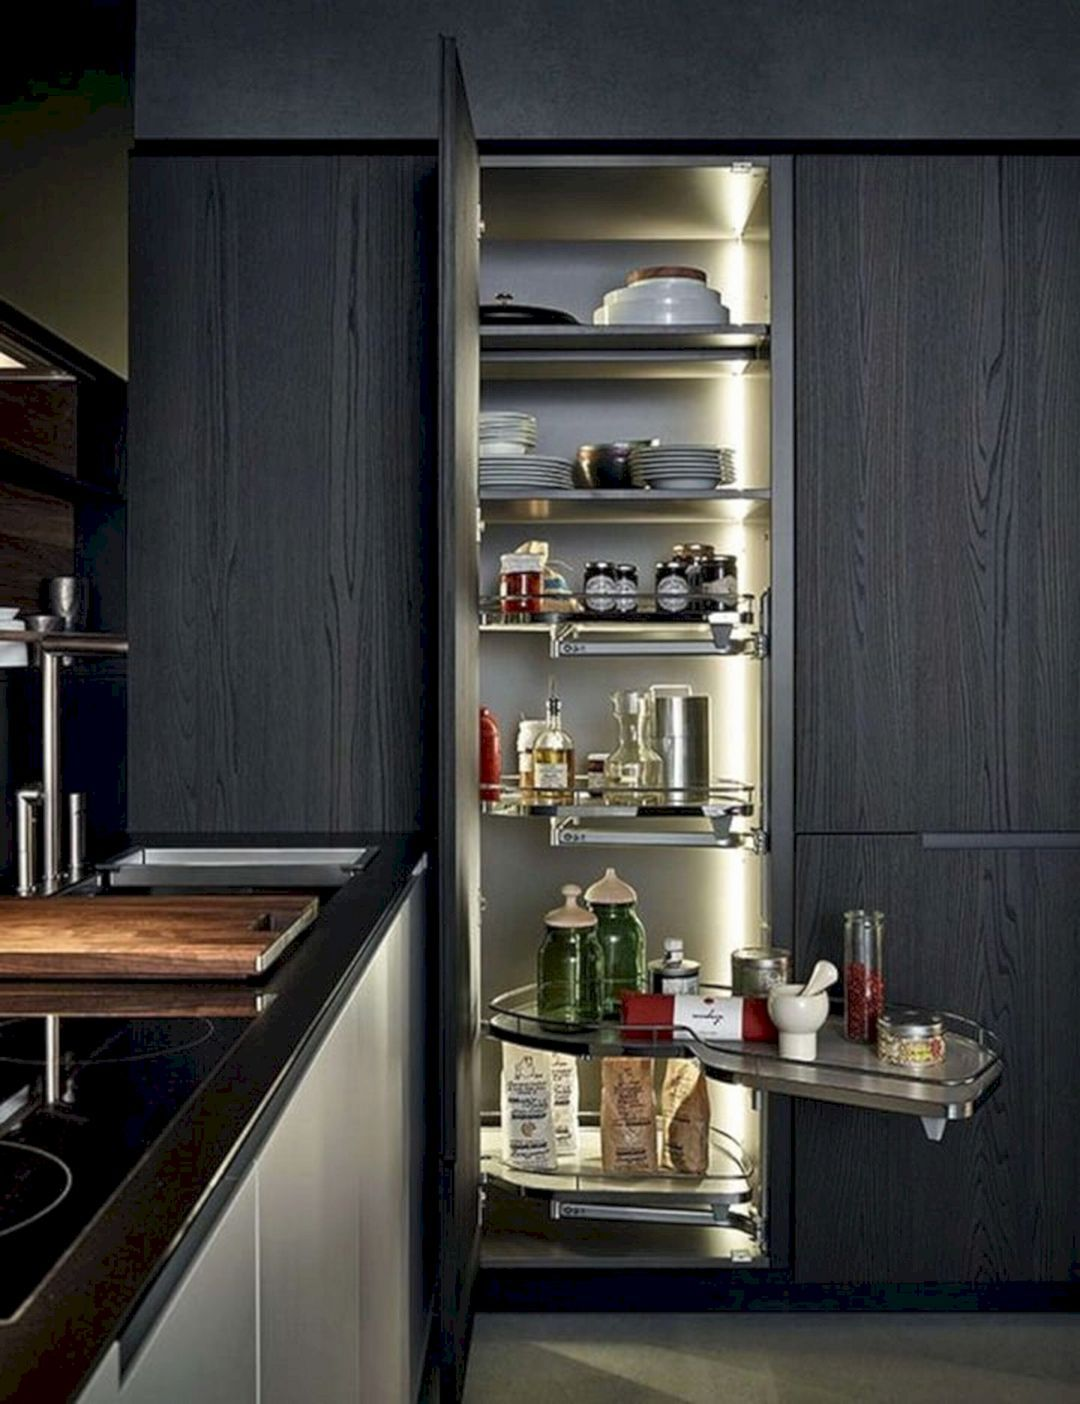 Top 10 Awesome Sliding Kitchen Cabinet Ideas For Best Organization Ideas Decor It S Contemporary Kitchen Modern Kitchen Pantry Modern Kitchen